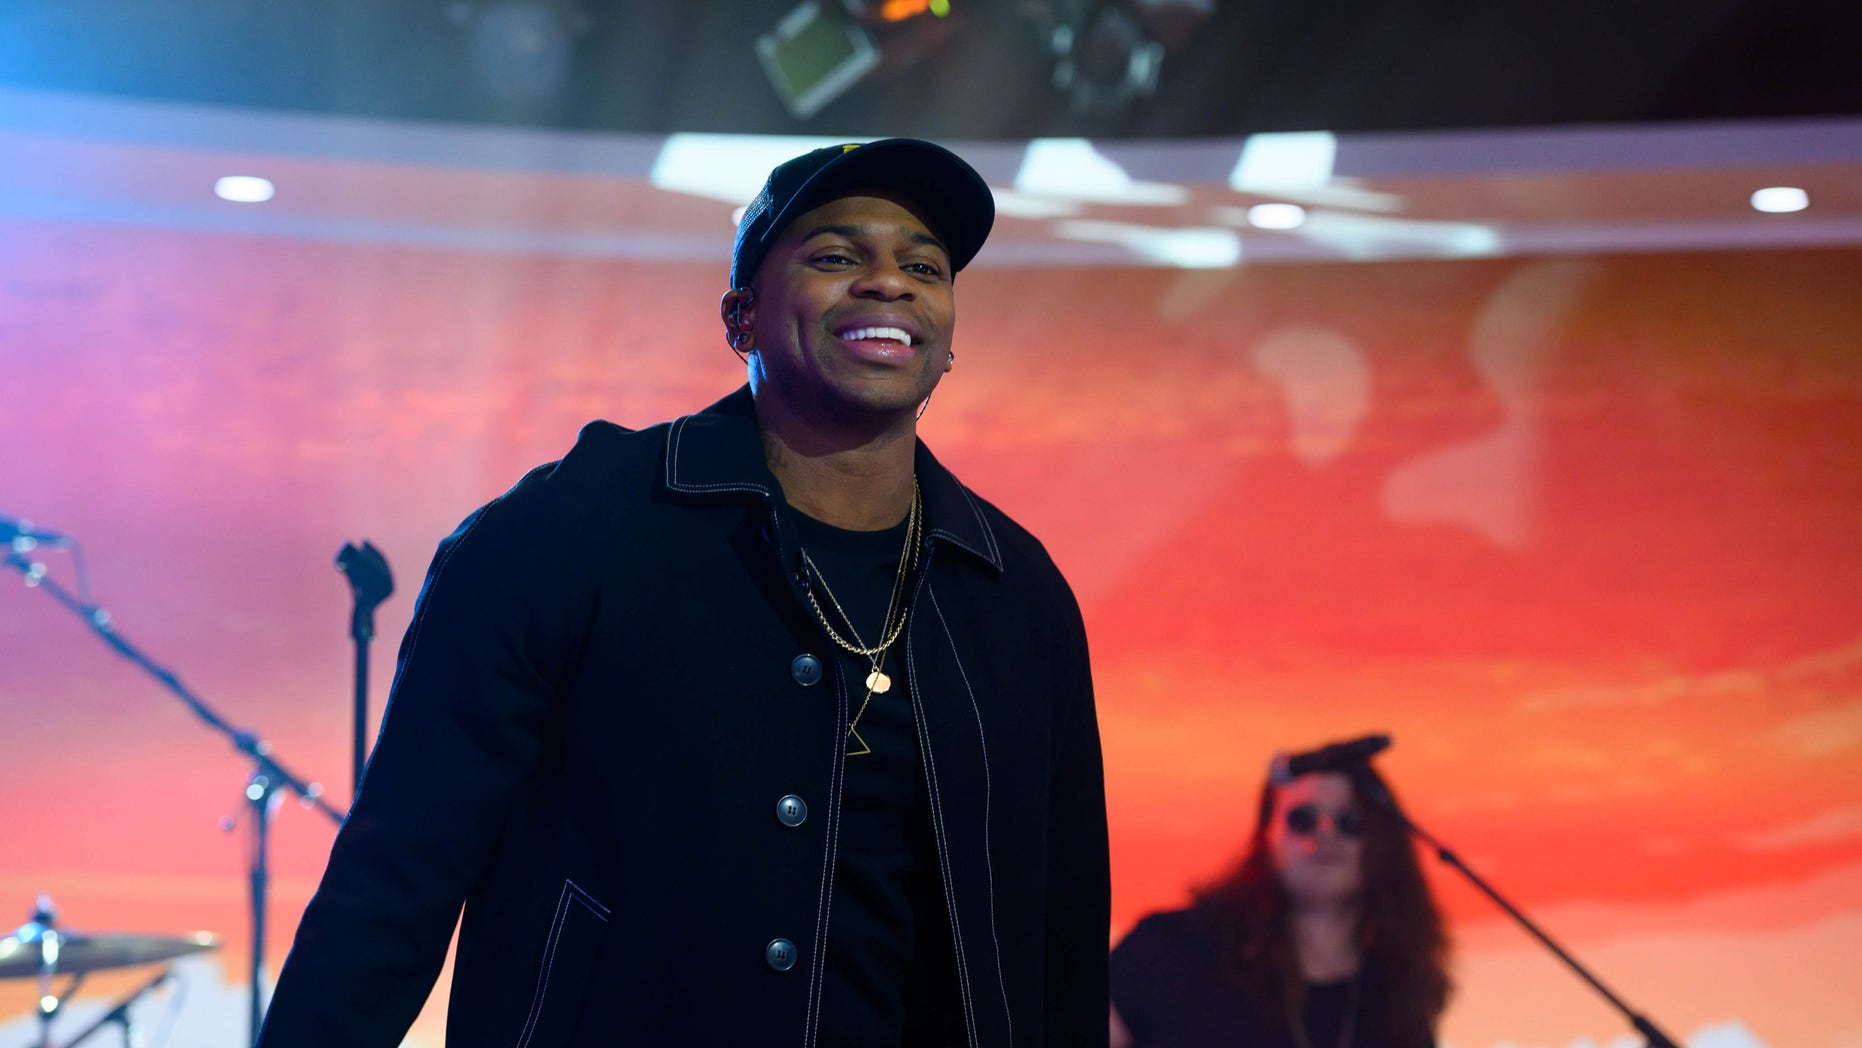 Country music star Jimmie Allen kicked an unruly fan out of a recent concert.